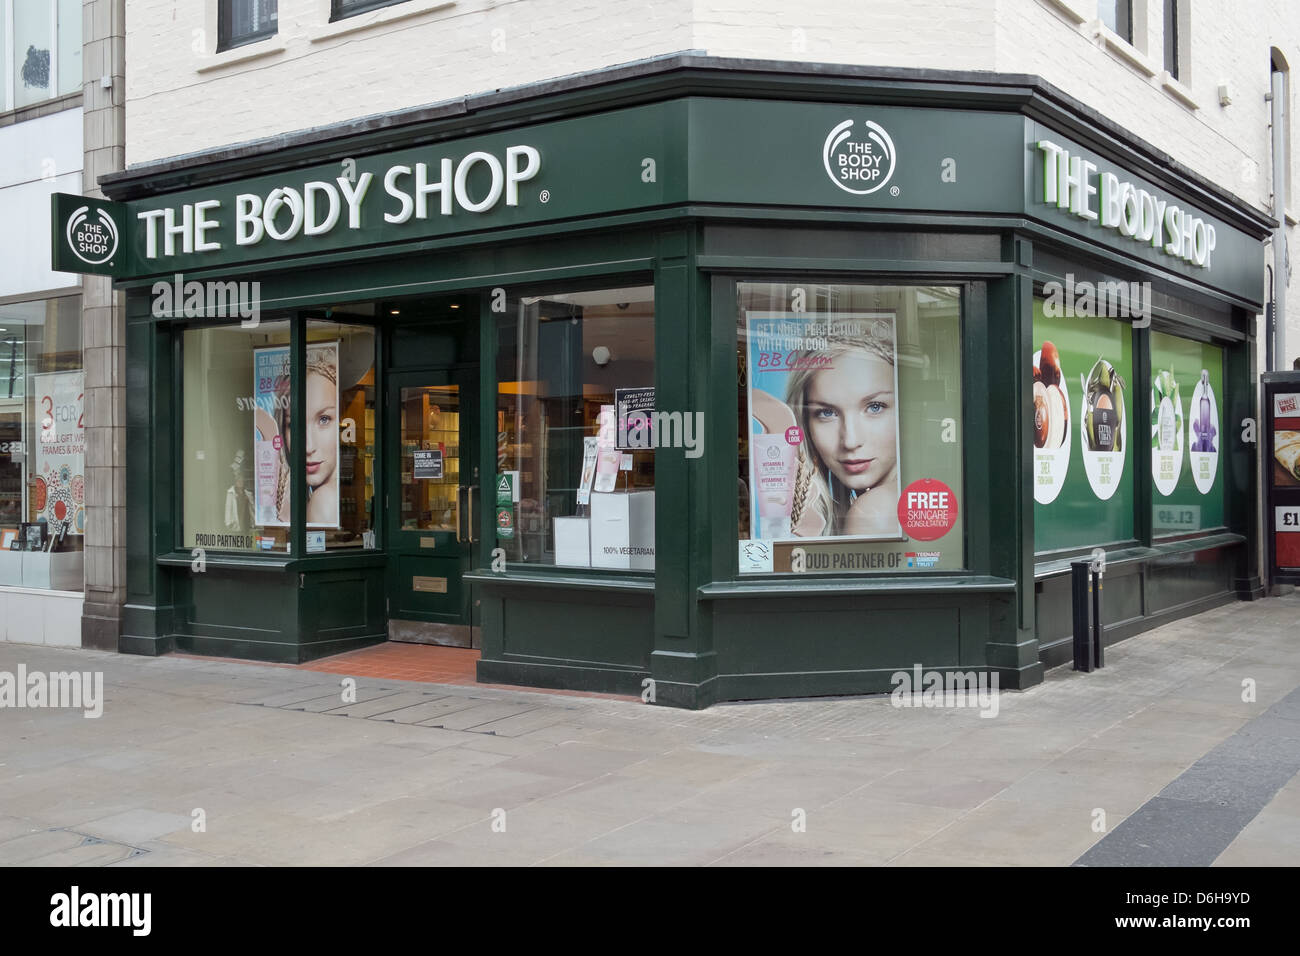 A branch of Body Shop, UK - Stock Image